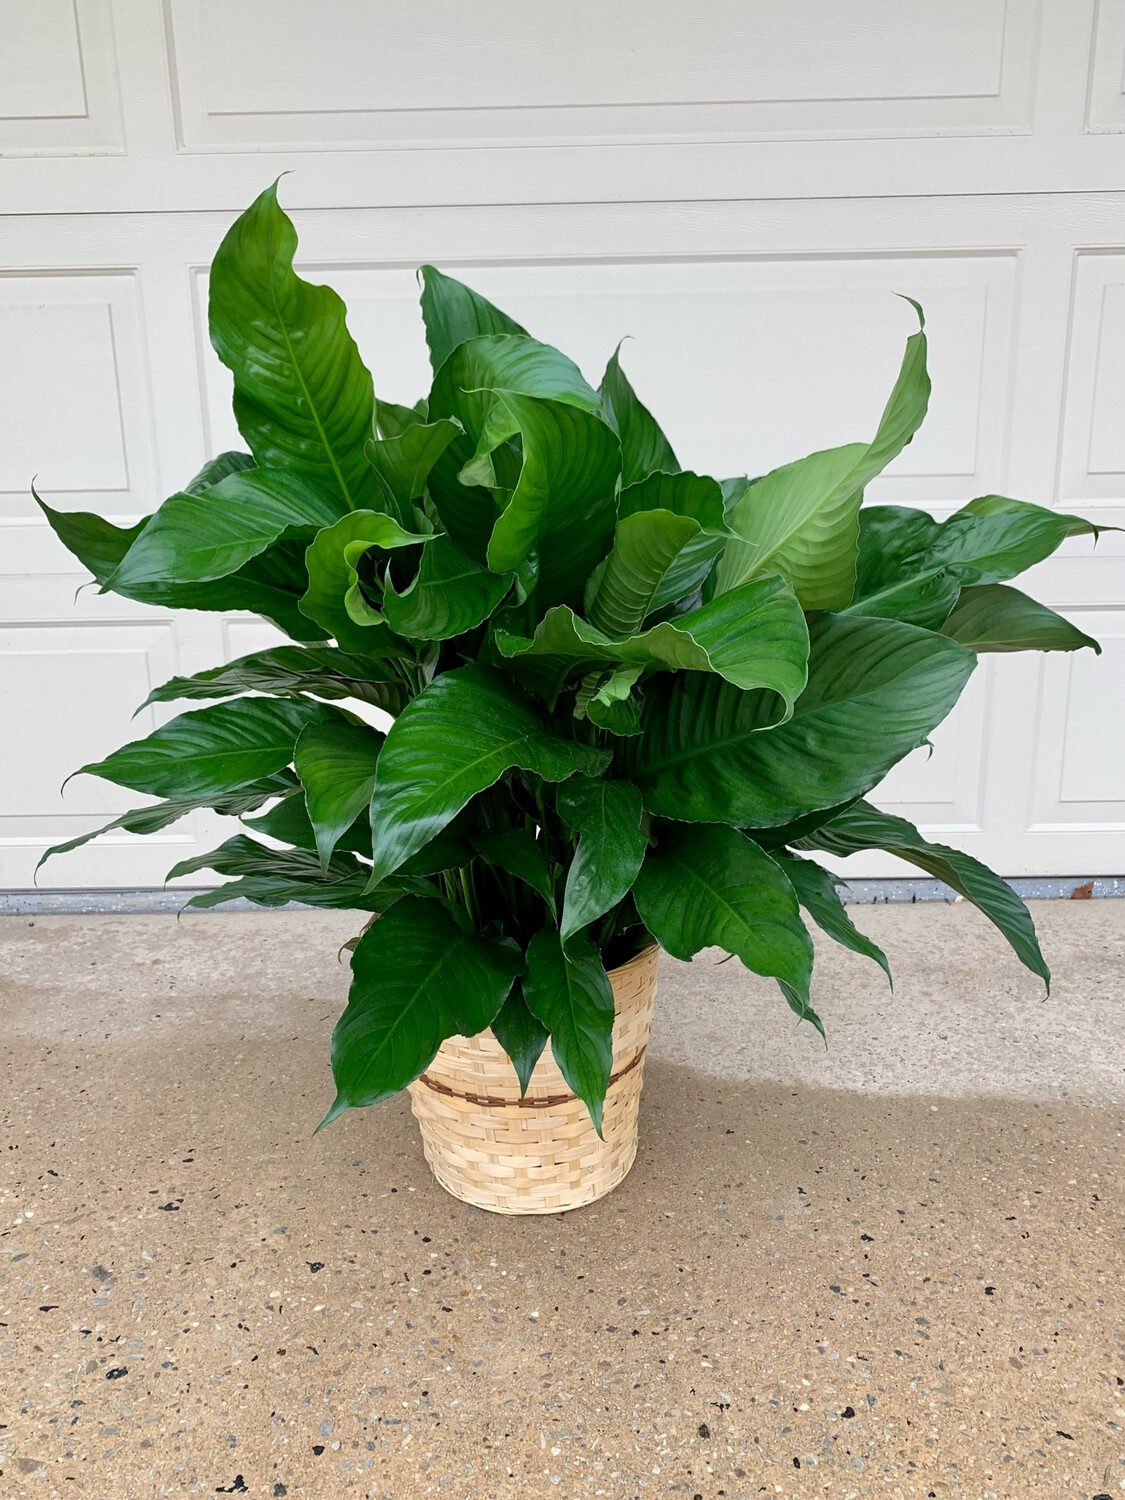 Live Green Plant in Container - Special Order 2 Business Days Ahead - Call For Pricing And Availability